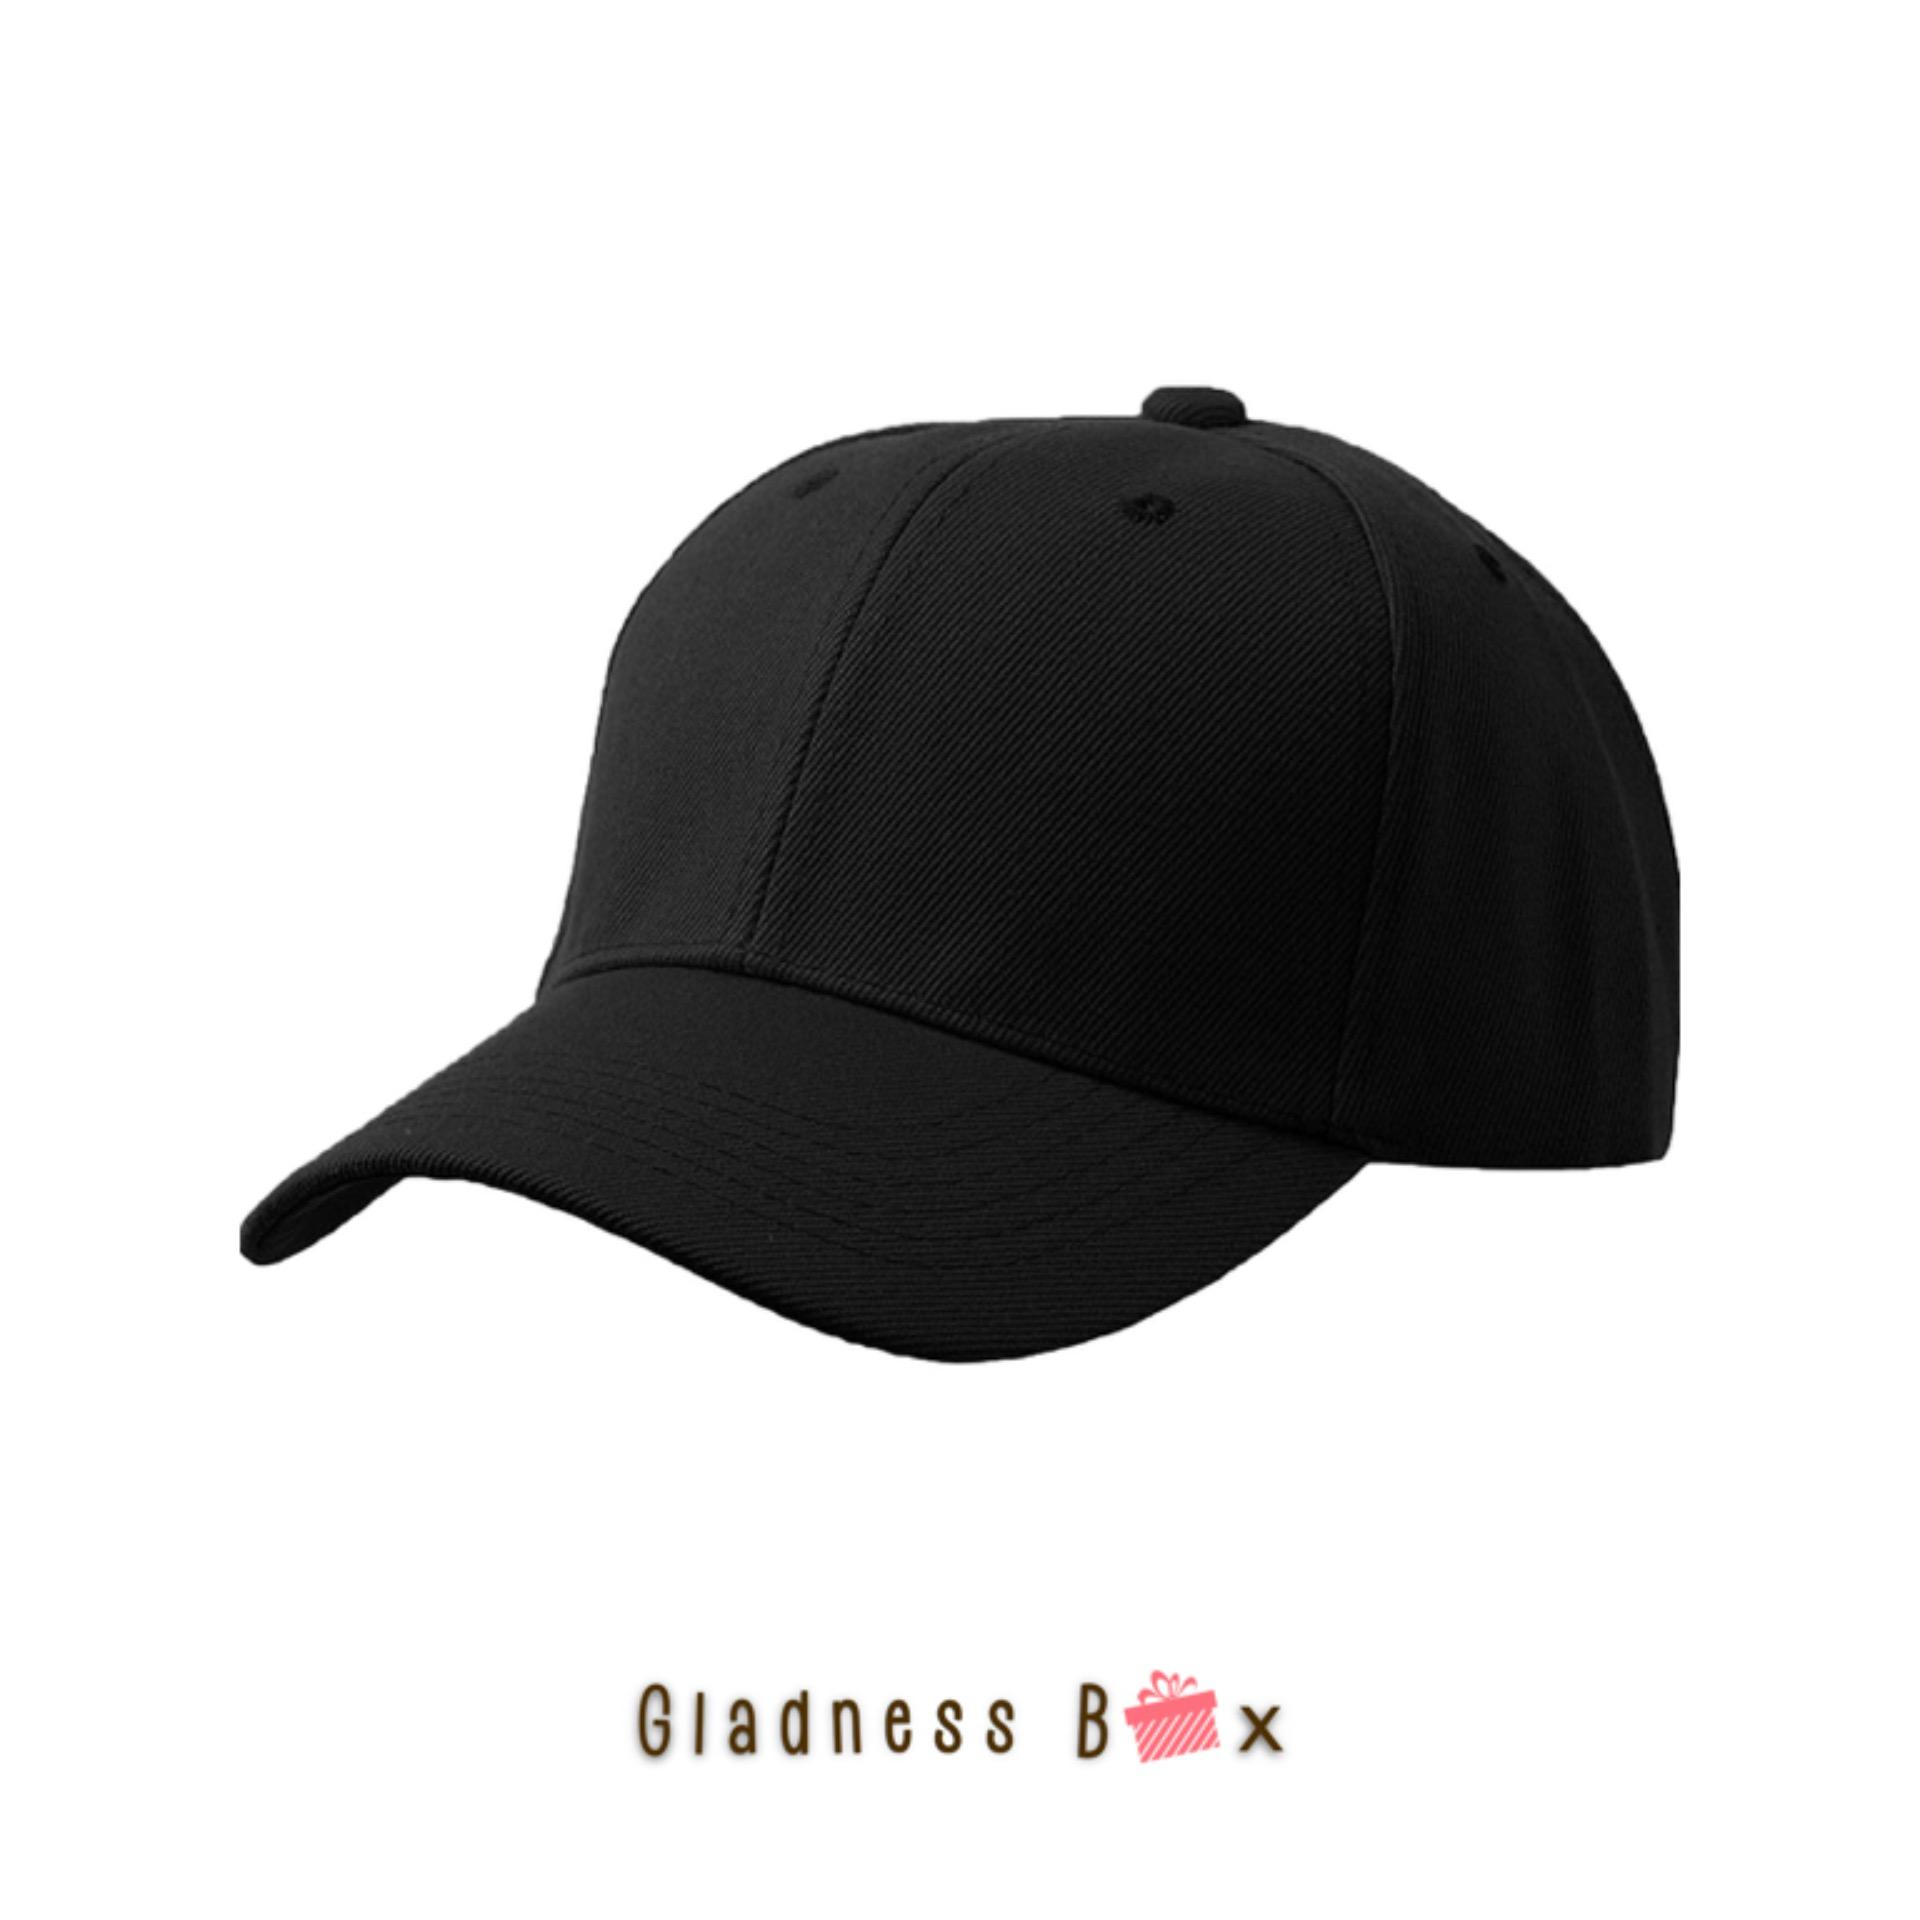 275d3dbf3 Gladness Box High Quality Plain Baseball Cap for Men/Women/Unisex